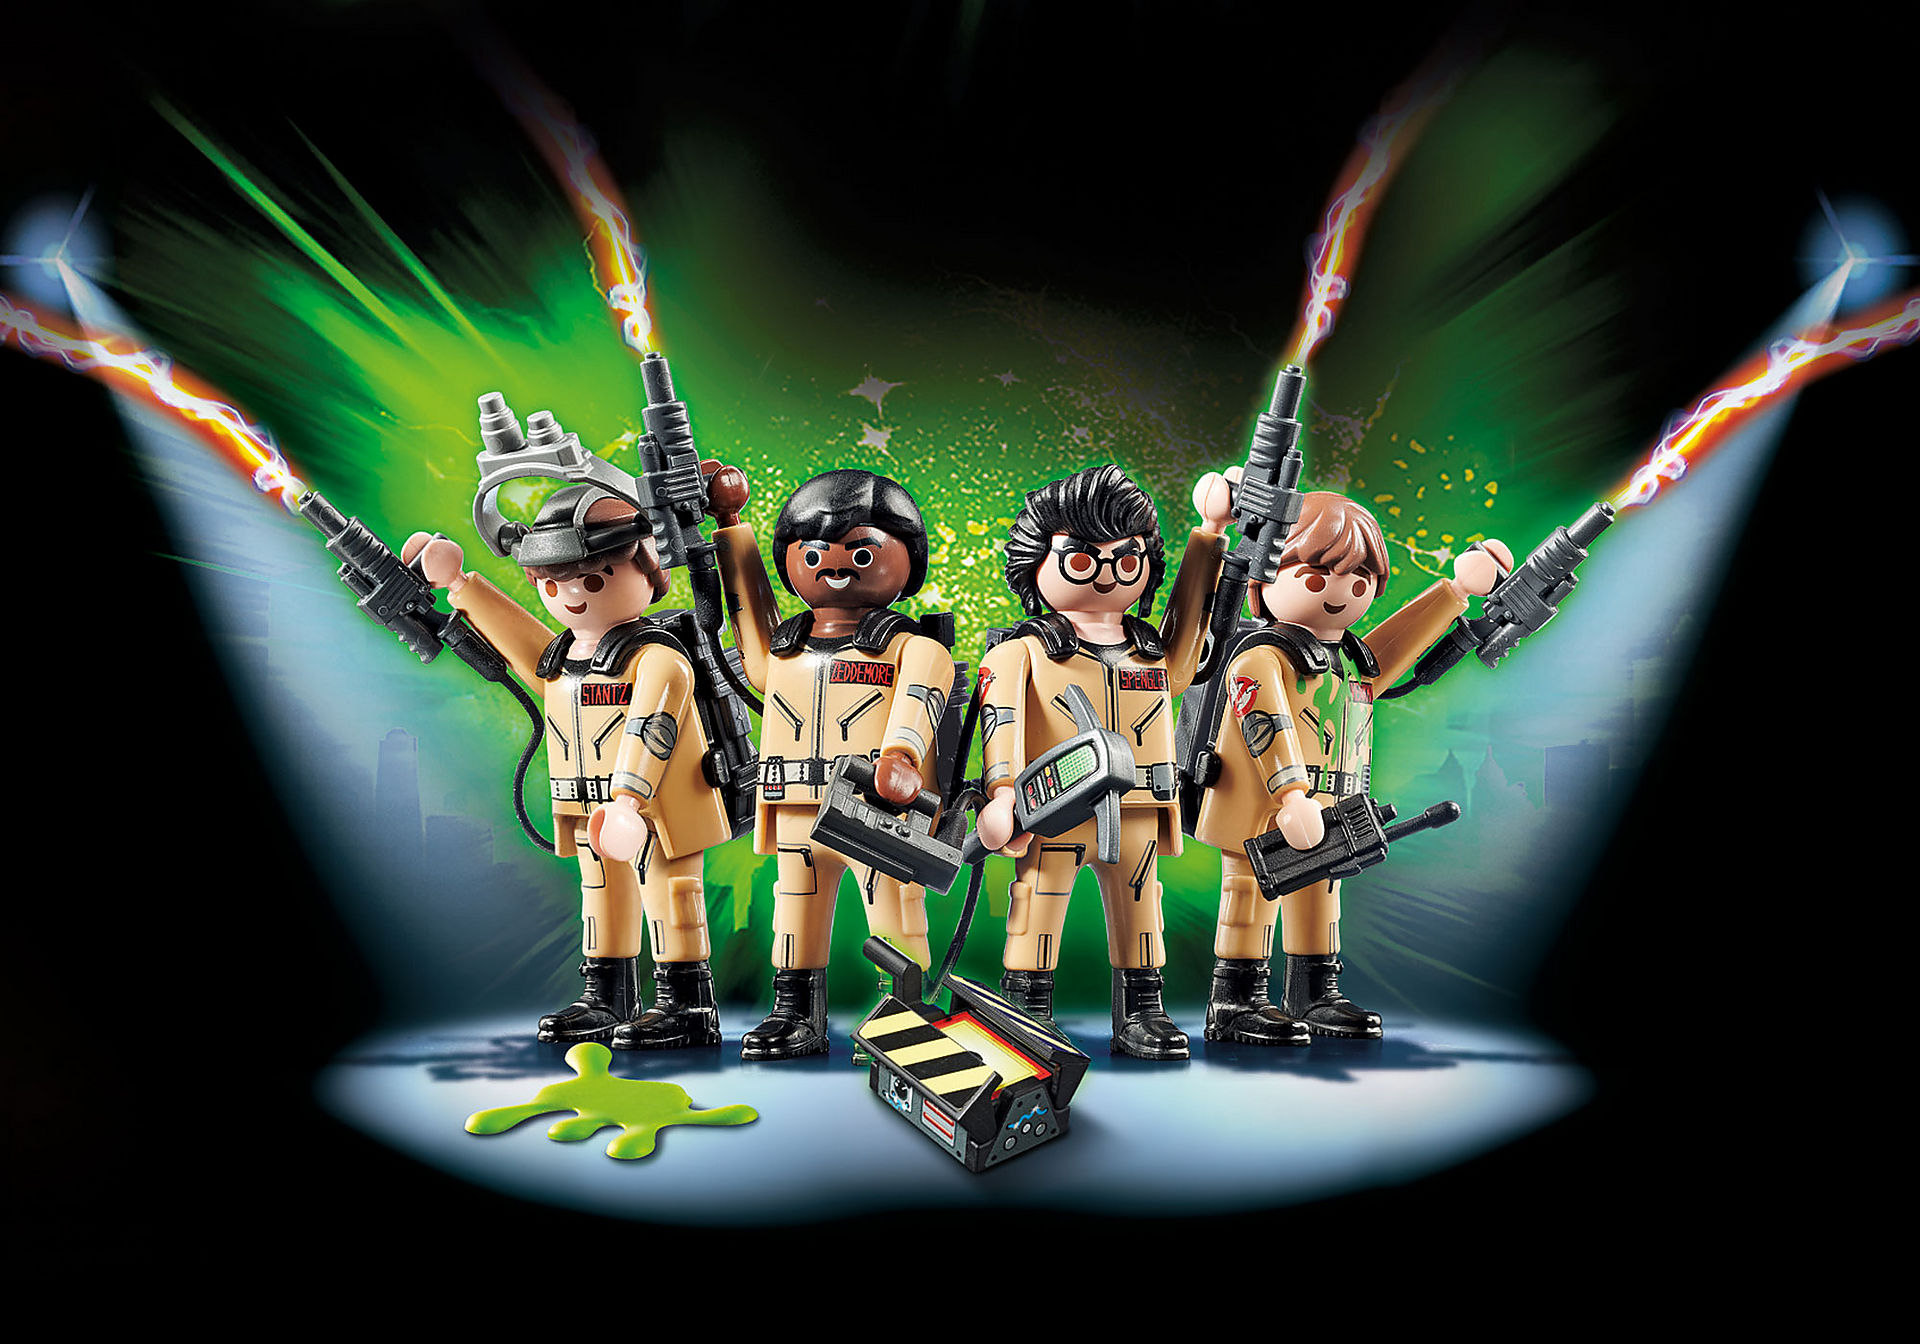 http://media.playmobil.com/i/playmobil/70175_product_detail/Ghostbusters™ Collector's Set Ghostbusters